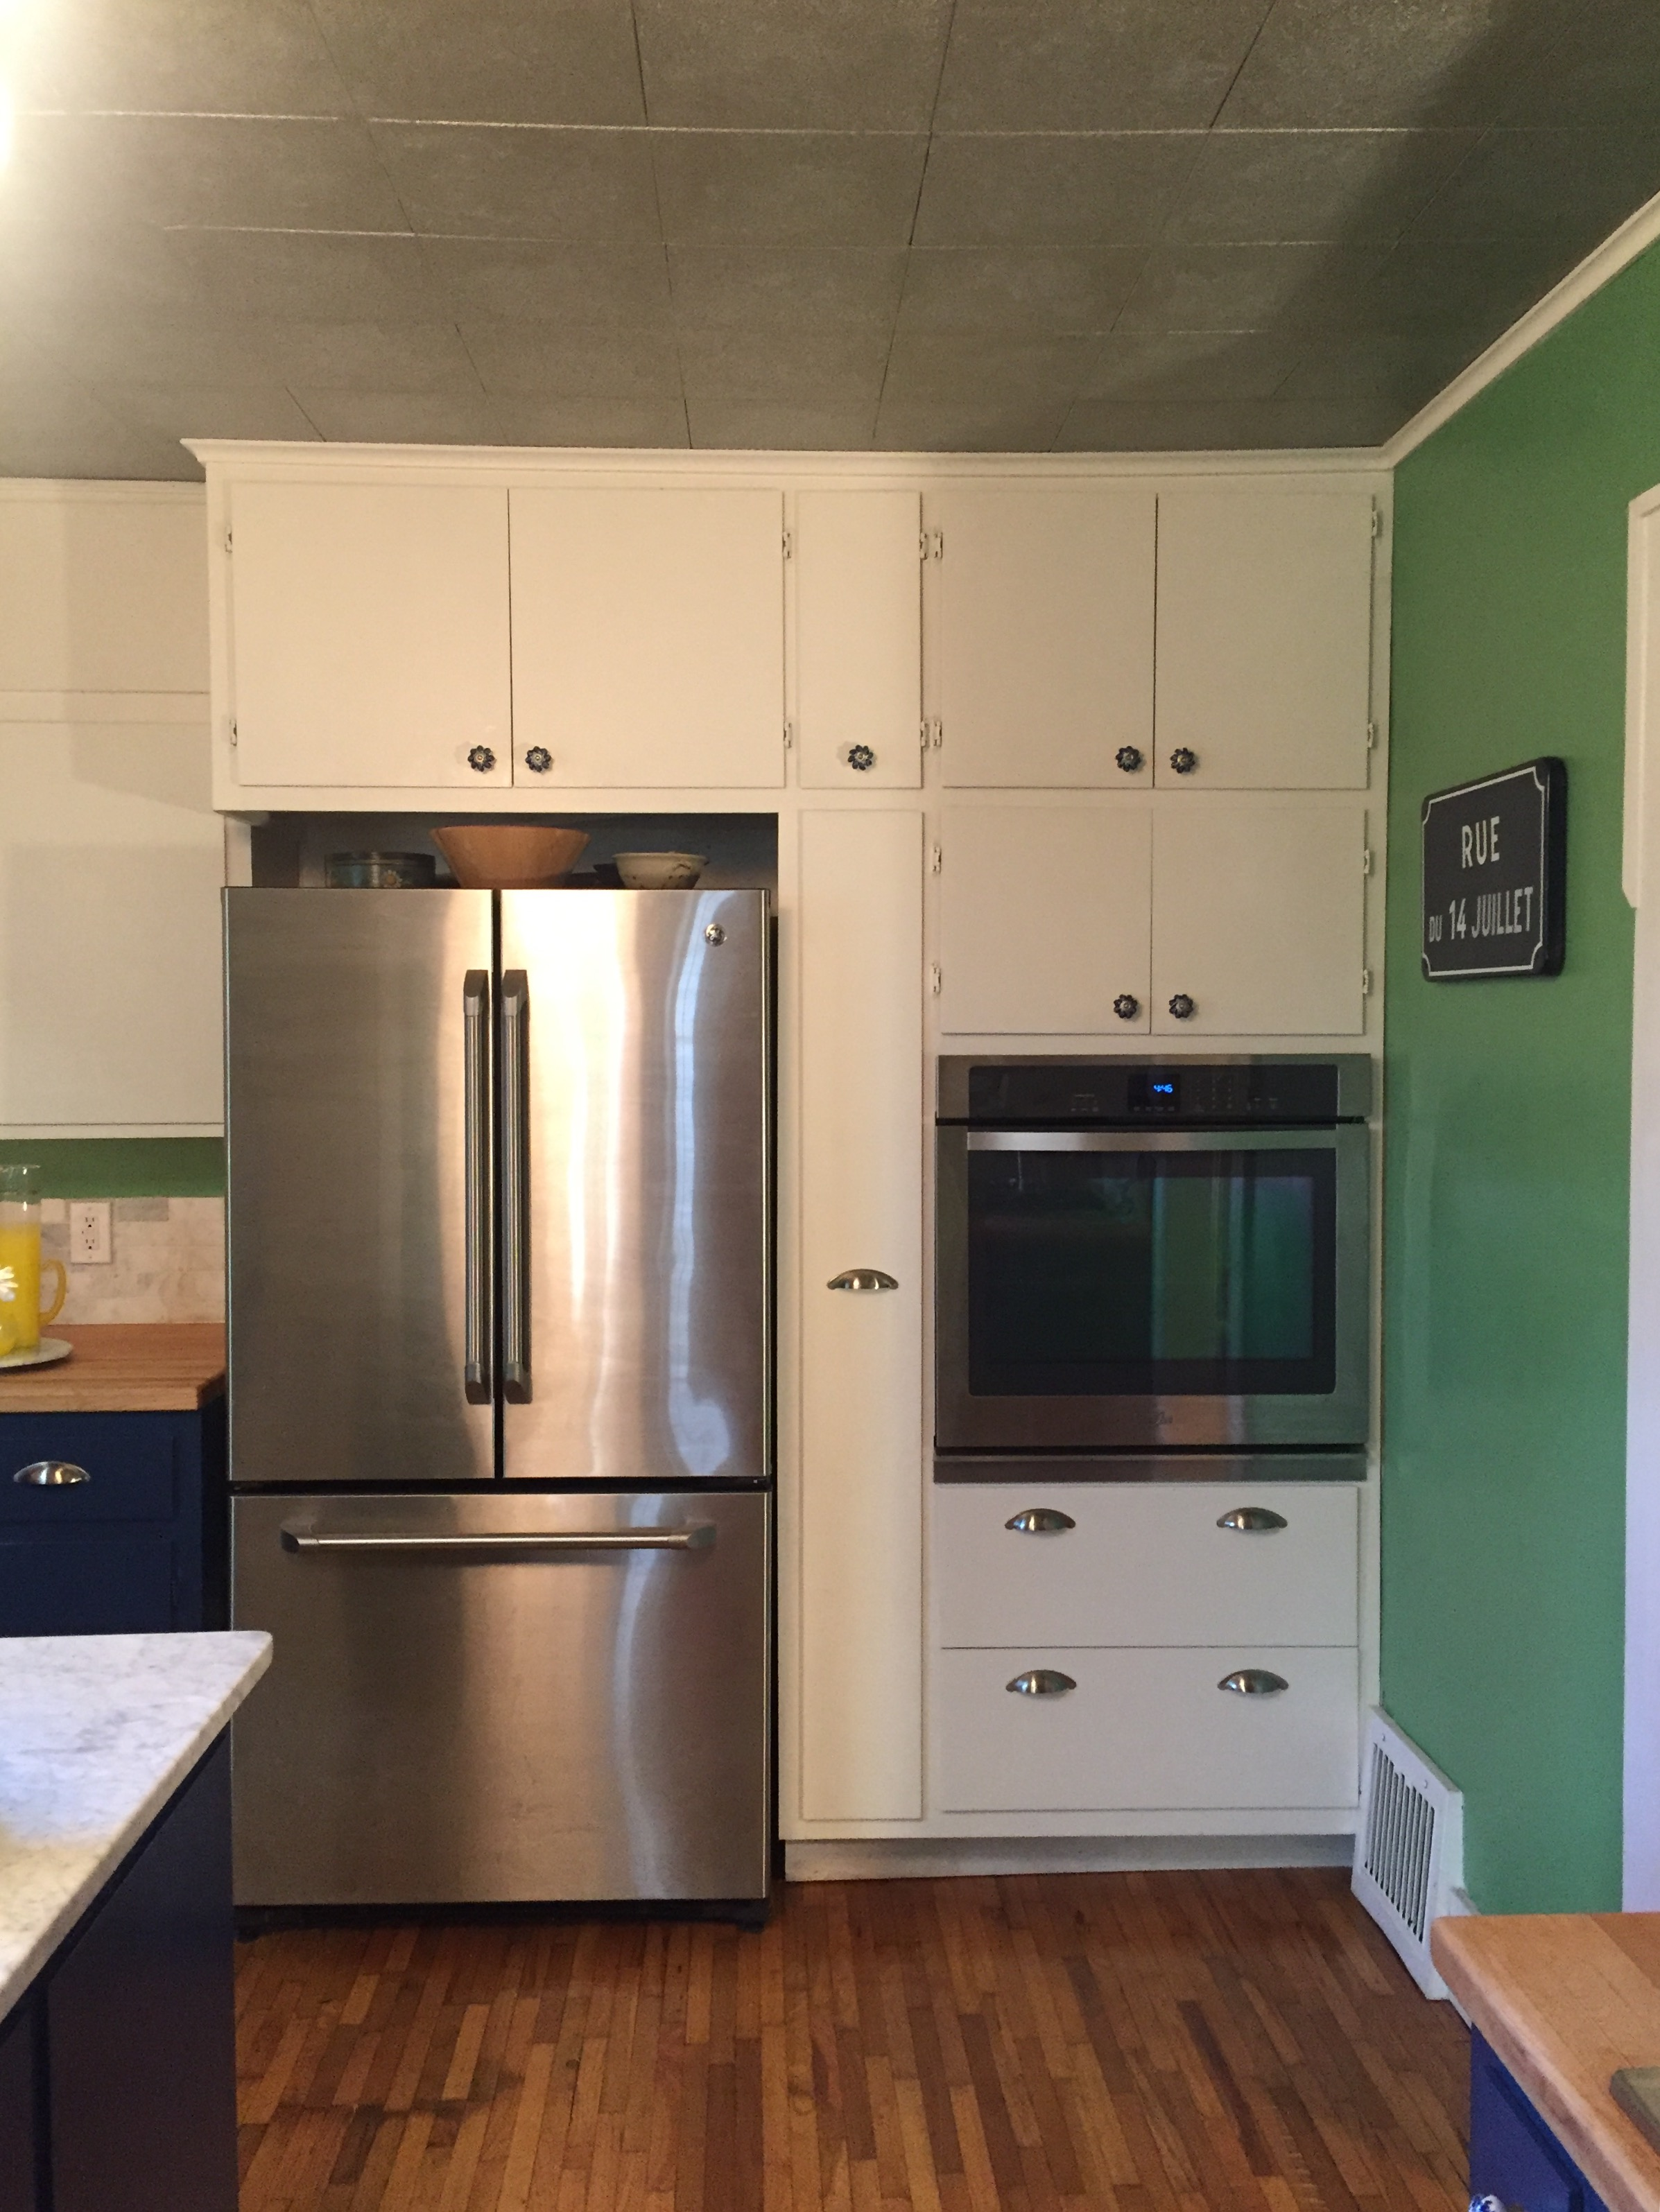 stainless-steel-appliances-pull-out-pantry